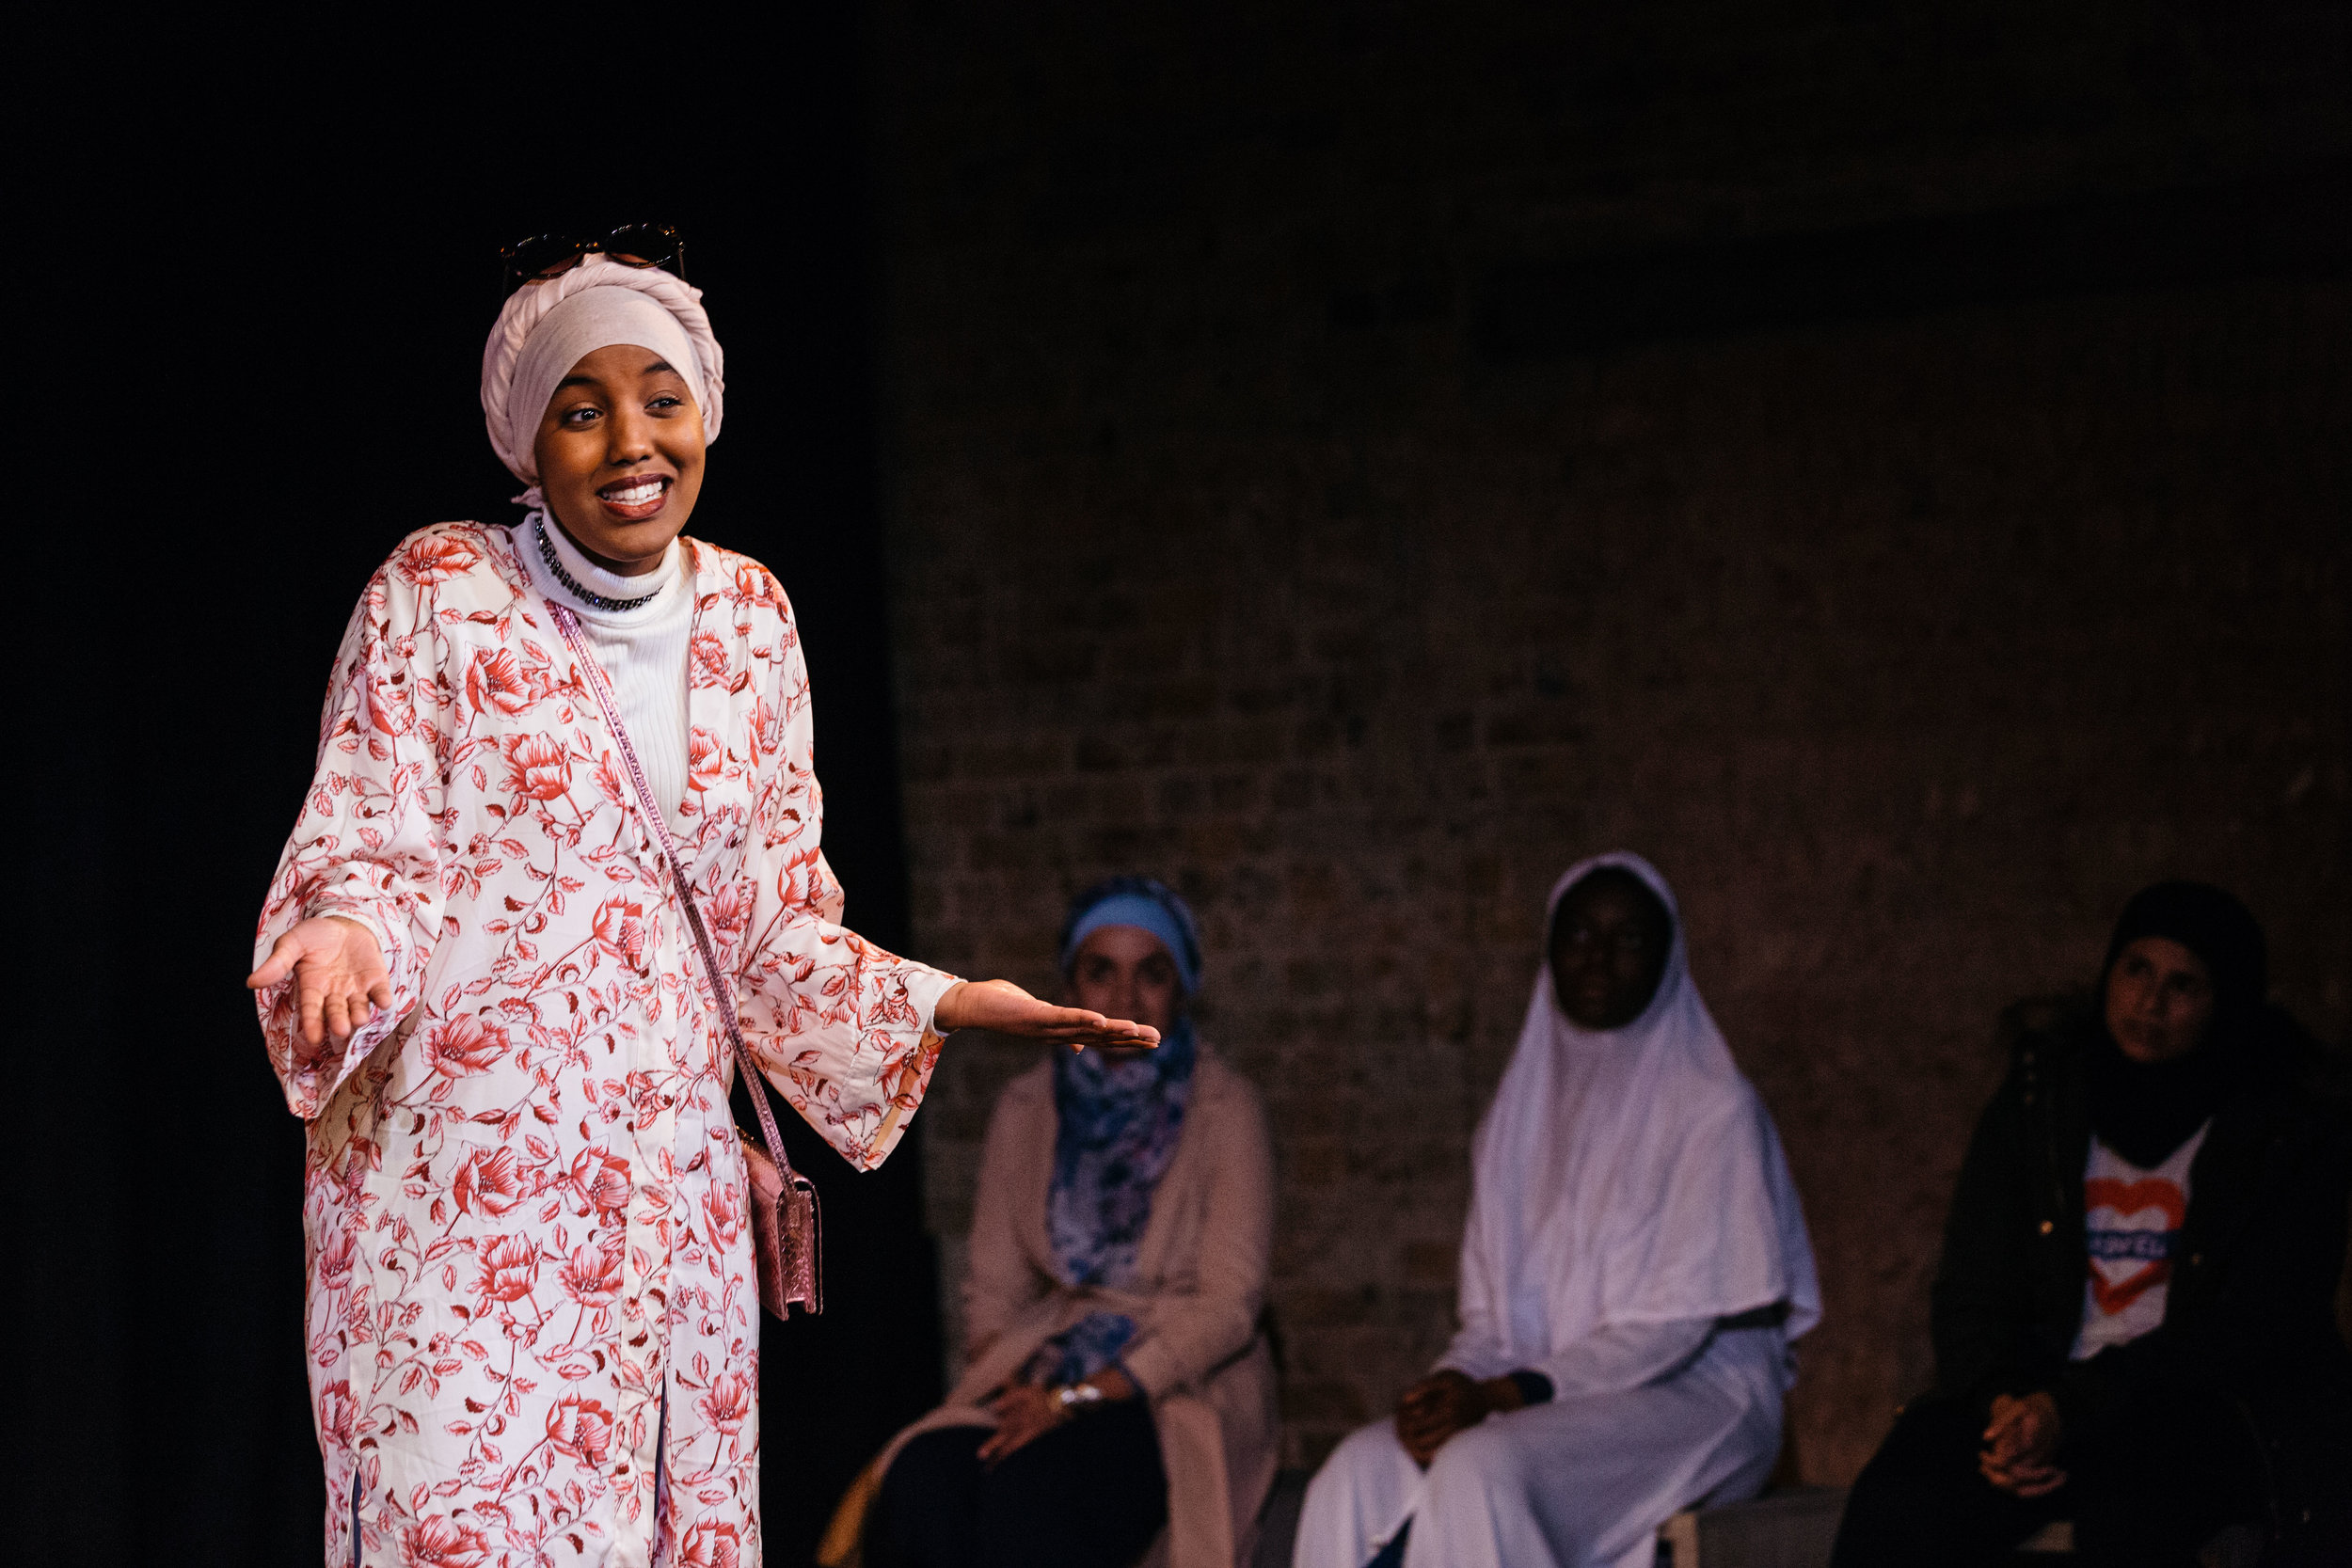 Hibo Muse in Hijabi Monologues London directed by Milli Bhatia-585 ©helenmurray.jpg